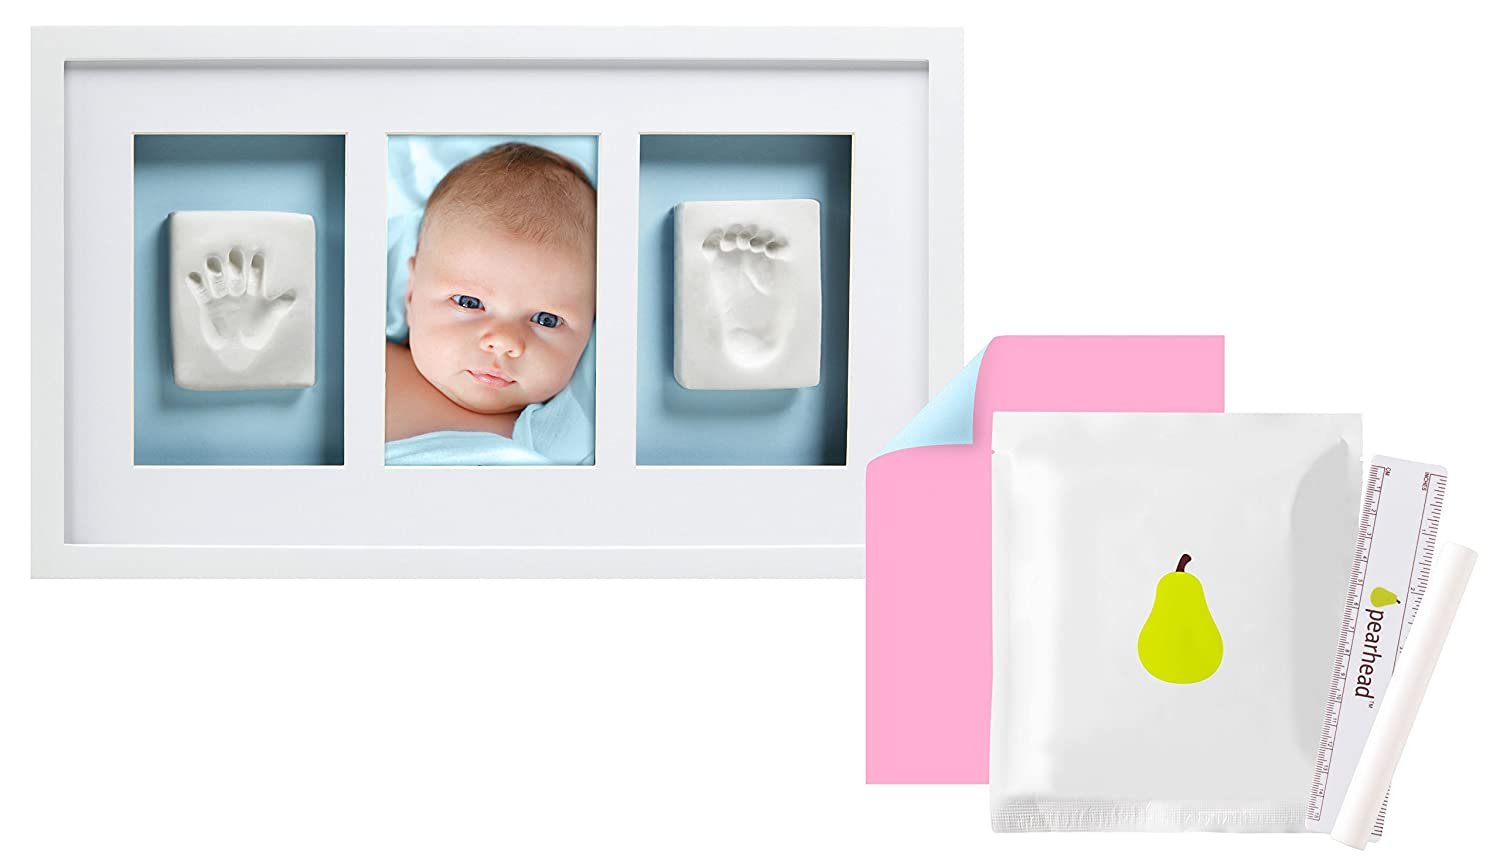 Pearhead Babyprints Newborn Baby Handprint and Footprint Deluxe Wall Photo Frame & Impression Kit, Gray P63001